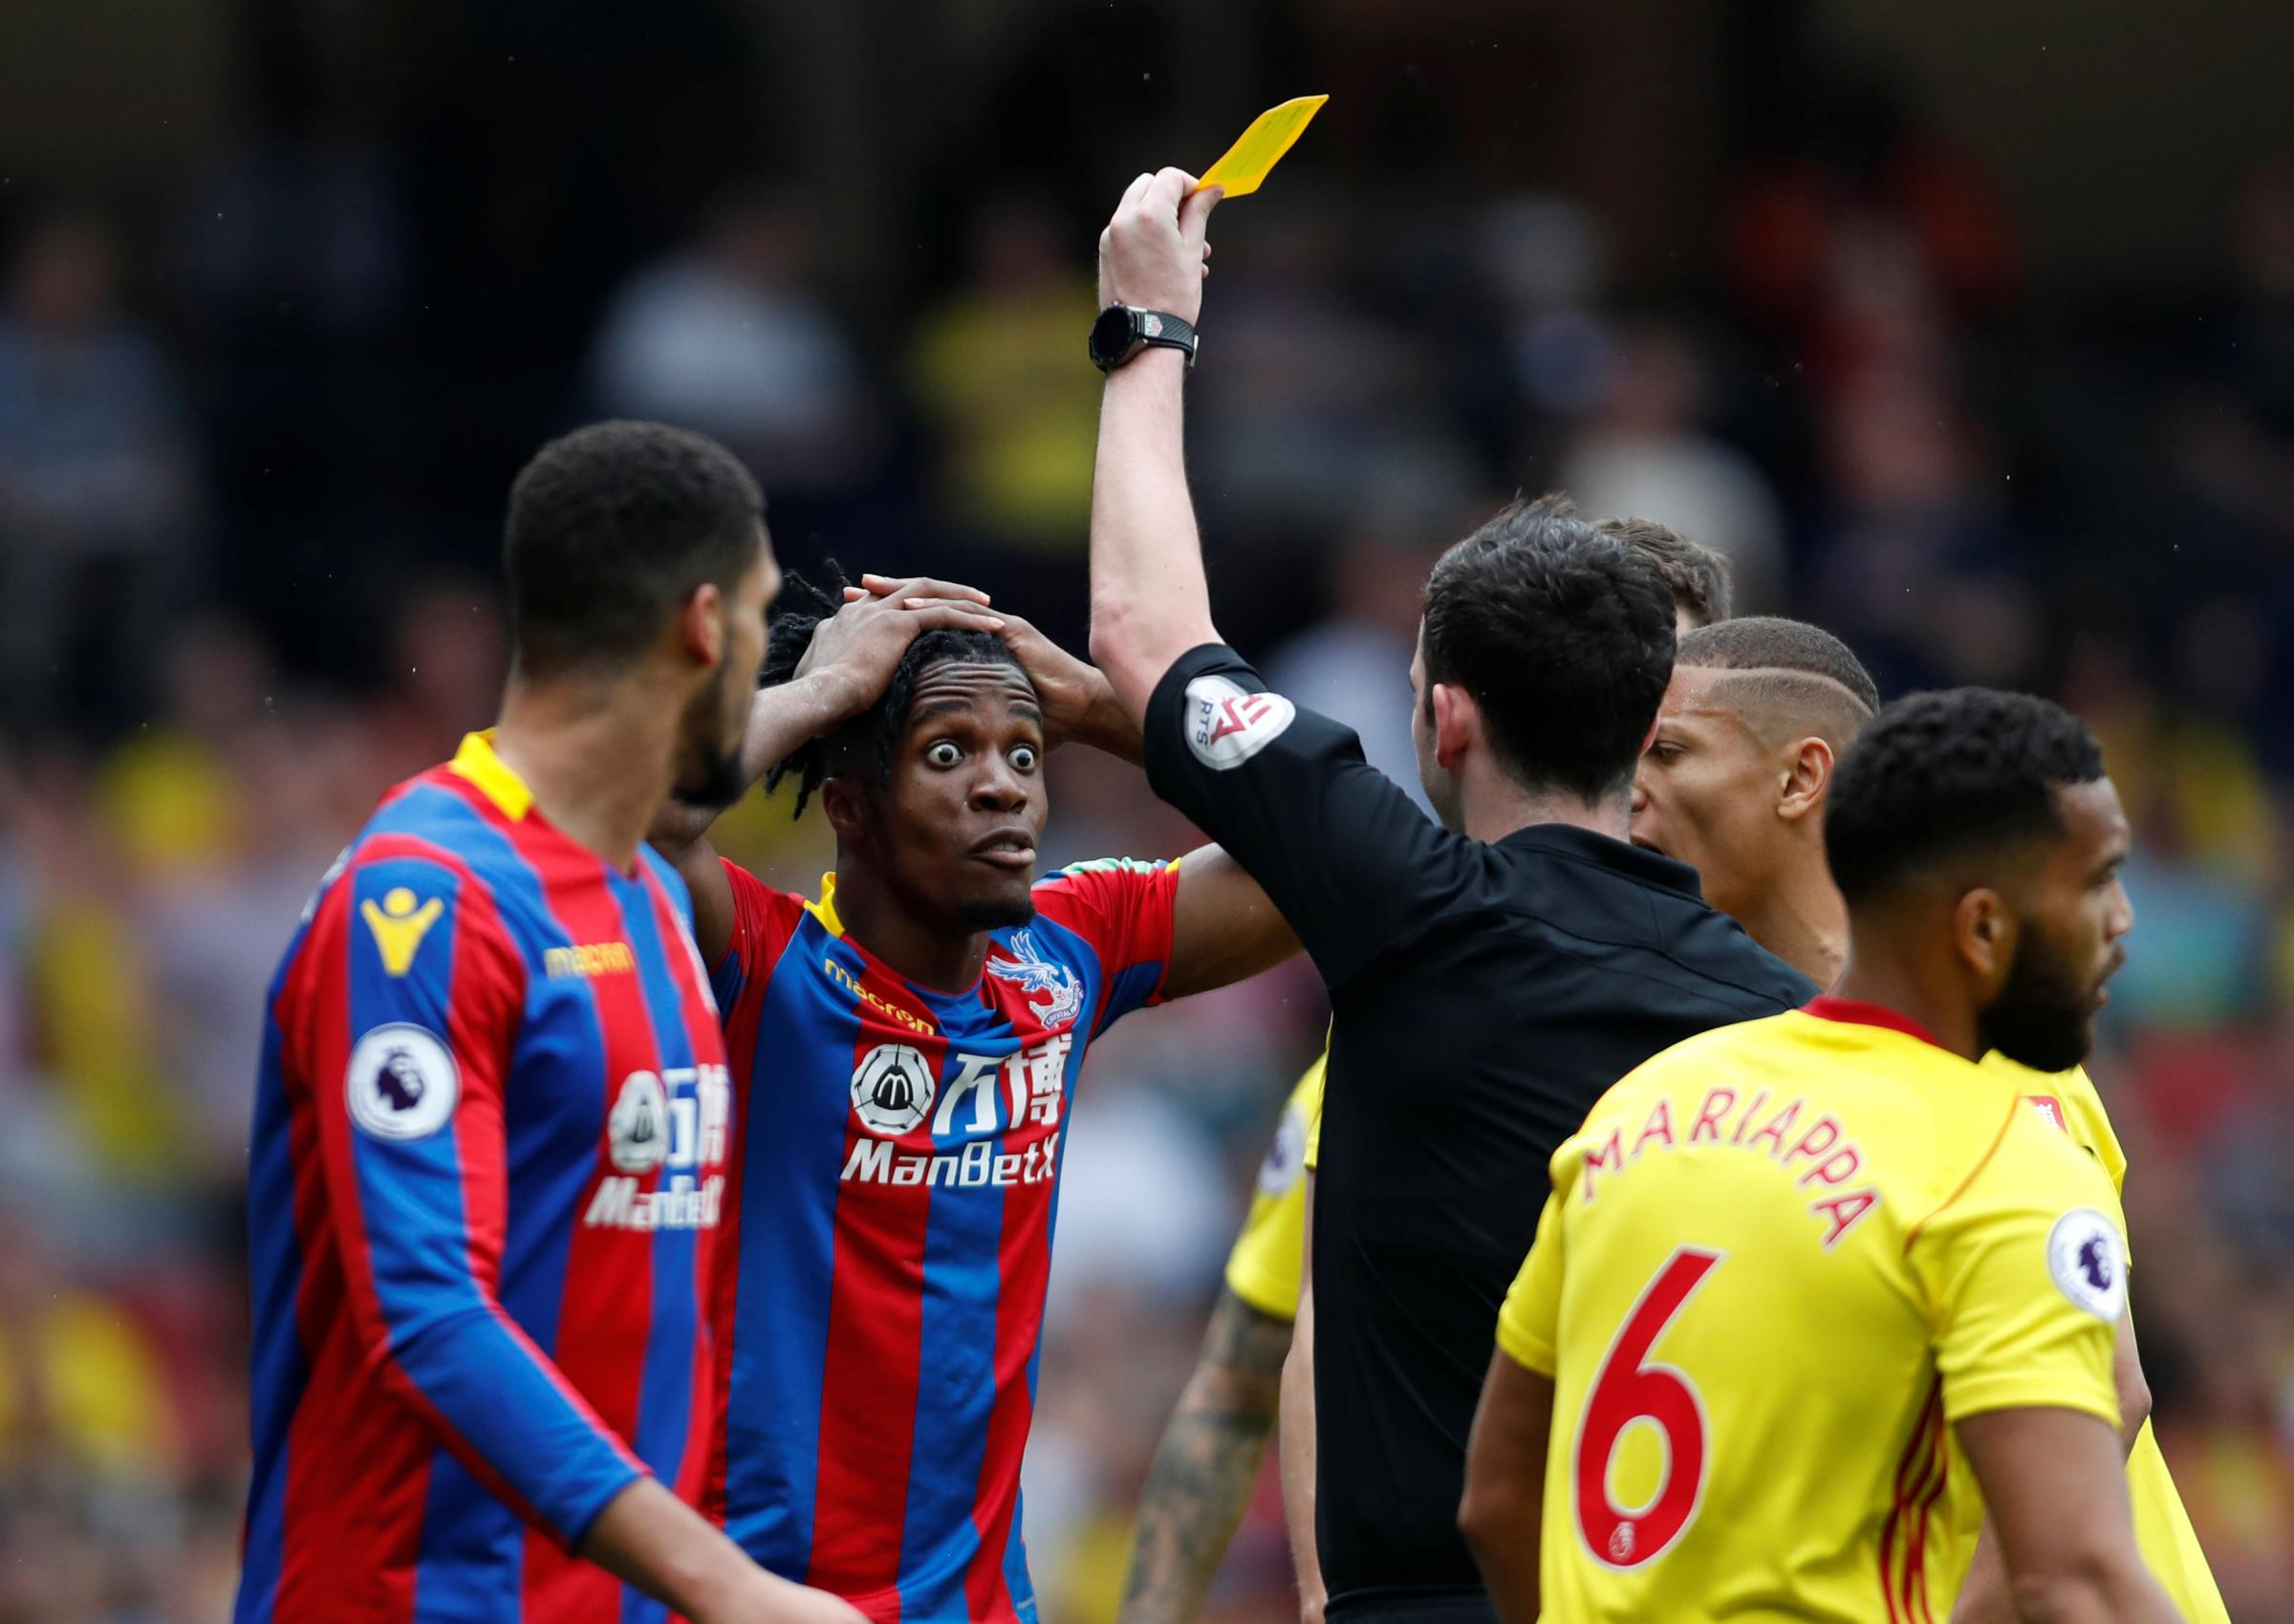 Crystal Palace record delights Zaha, hopes to stretch feat